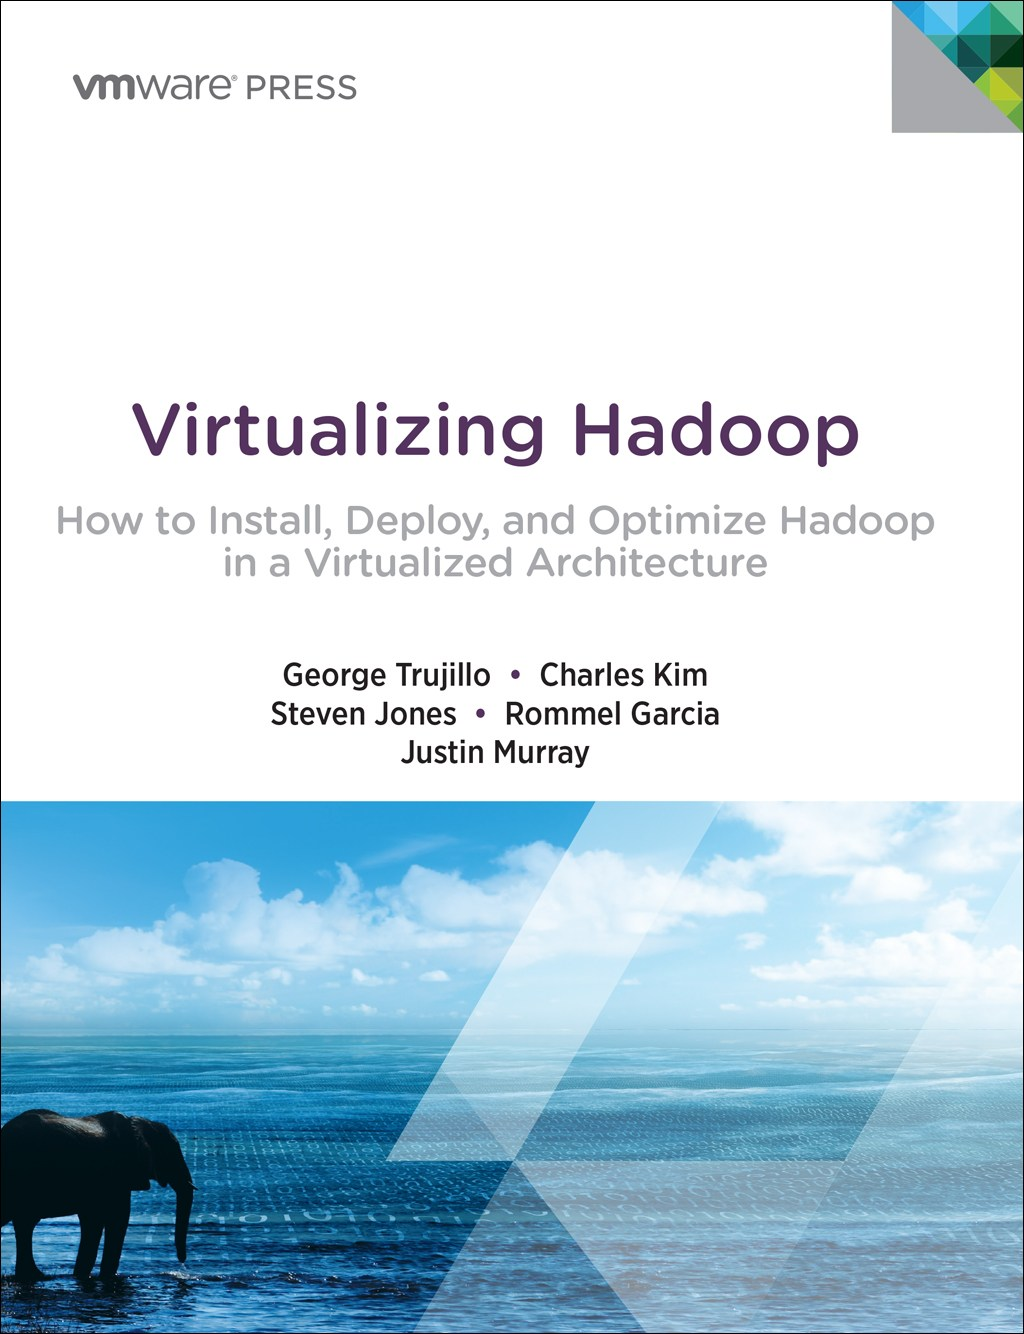 Virtualizing Hadoop: How to Install, Deploy, and Optimize Hadoop in a Virtualized Architecture